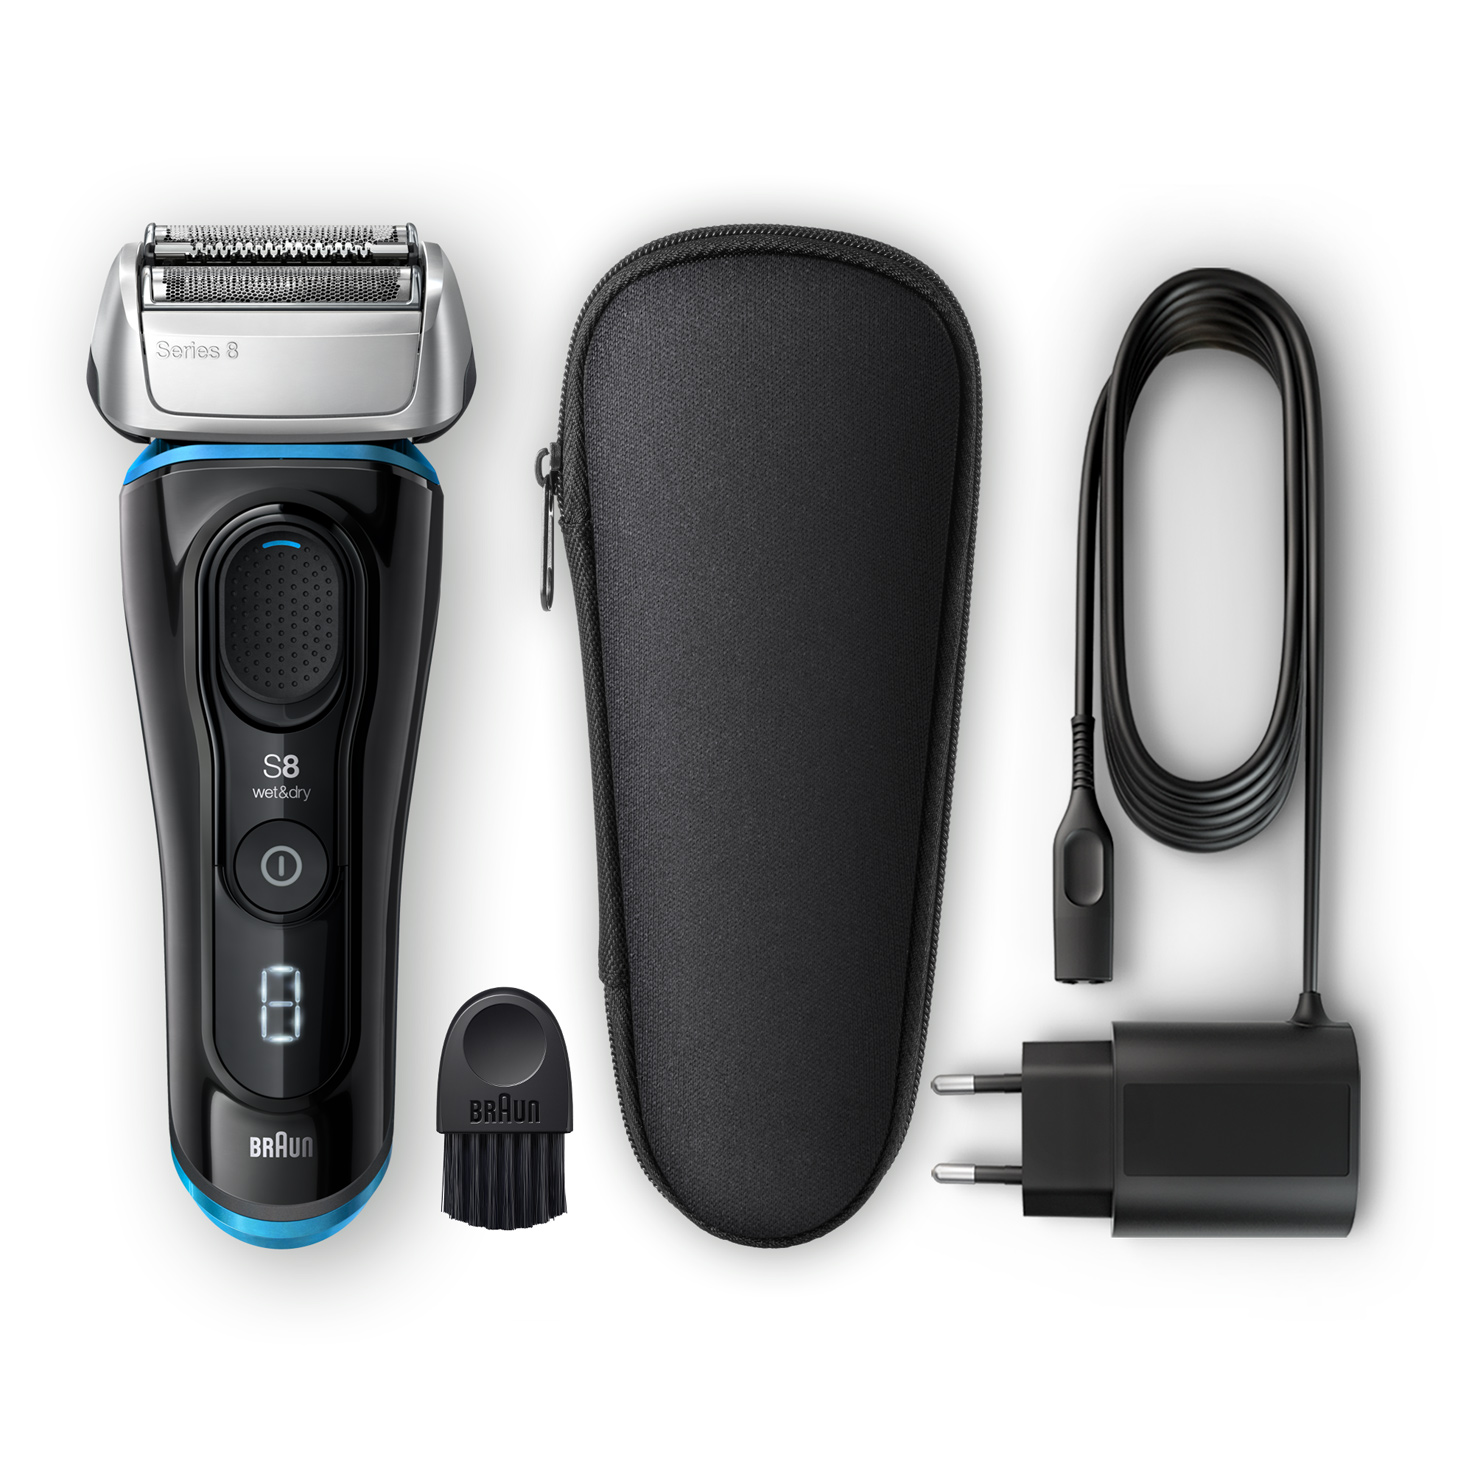 Series 8 8325s shaver - What´s in the box